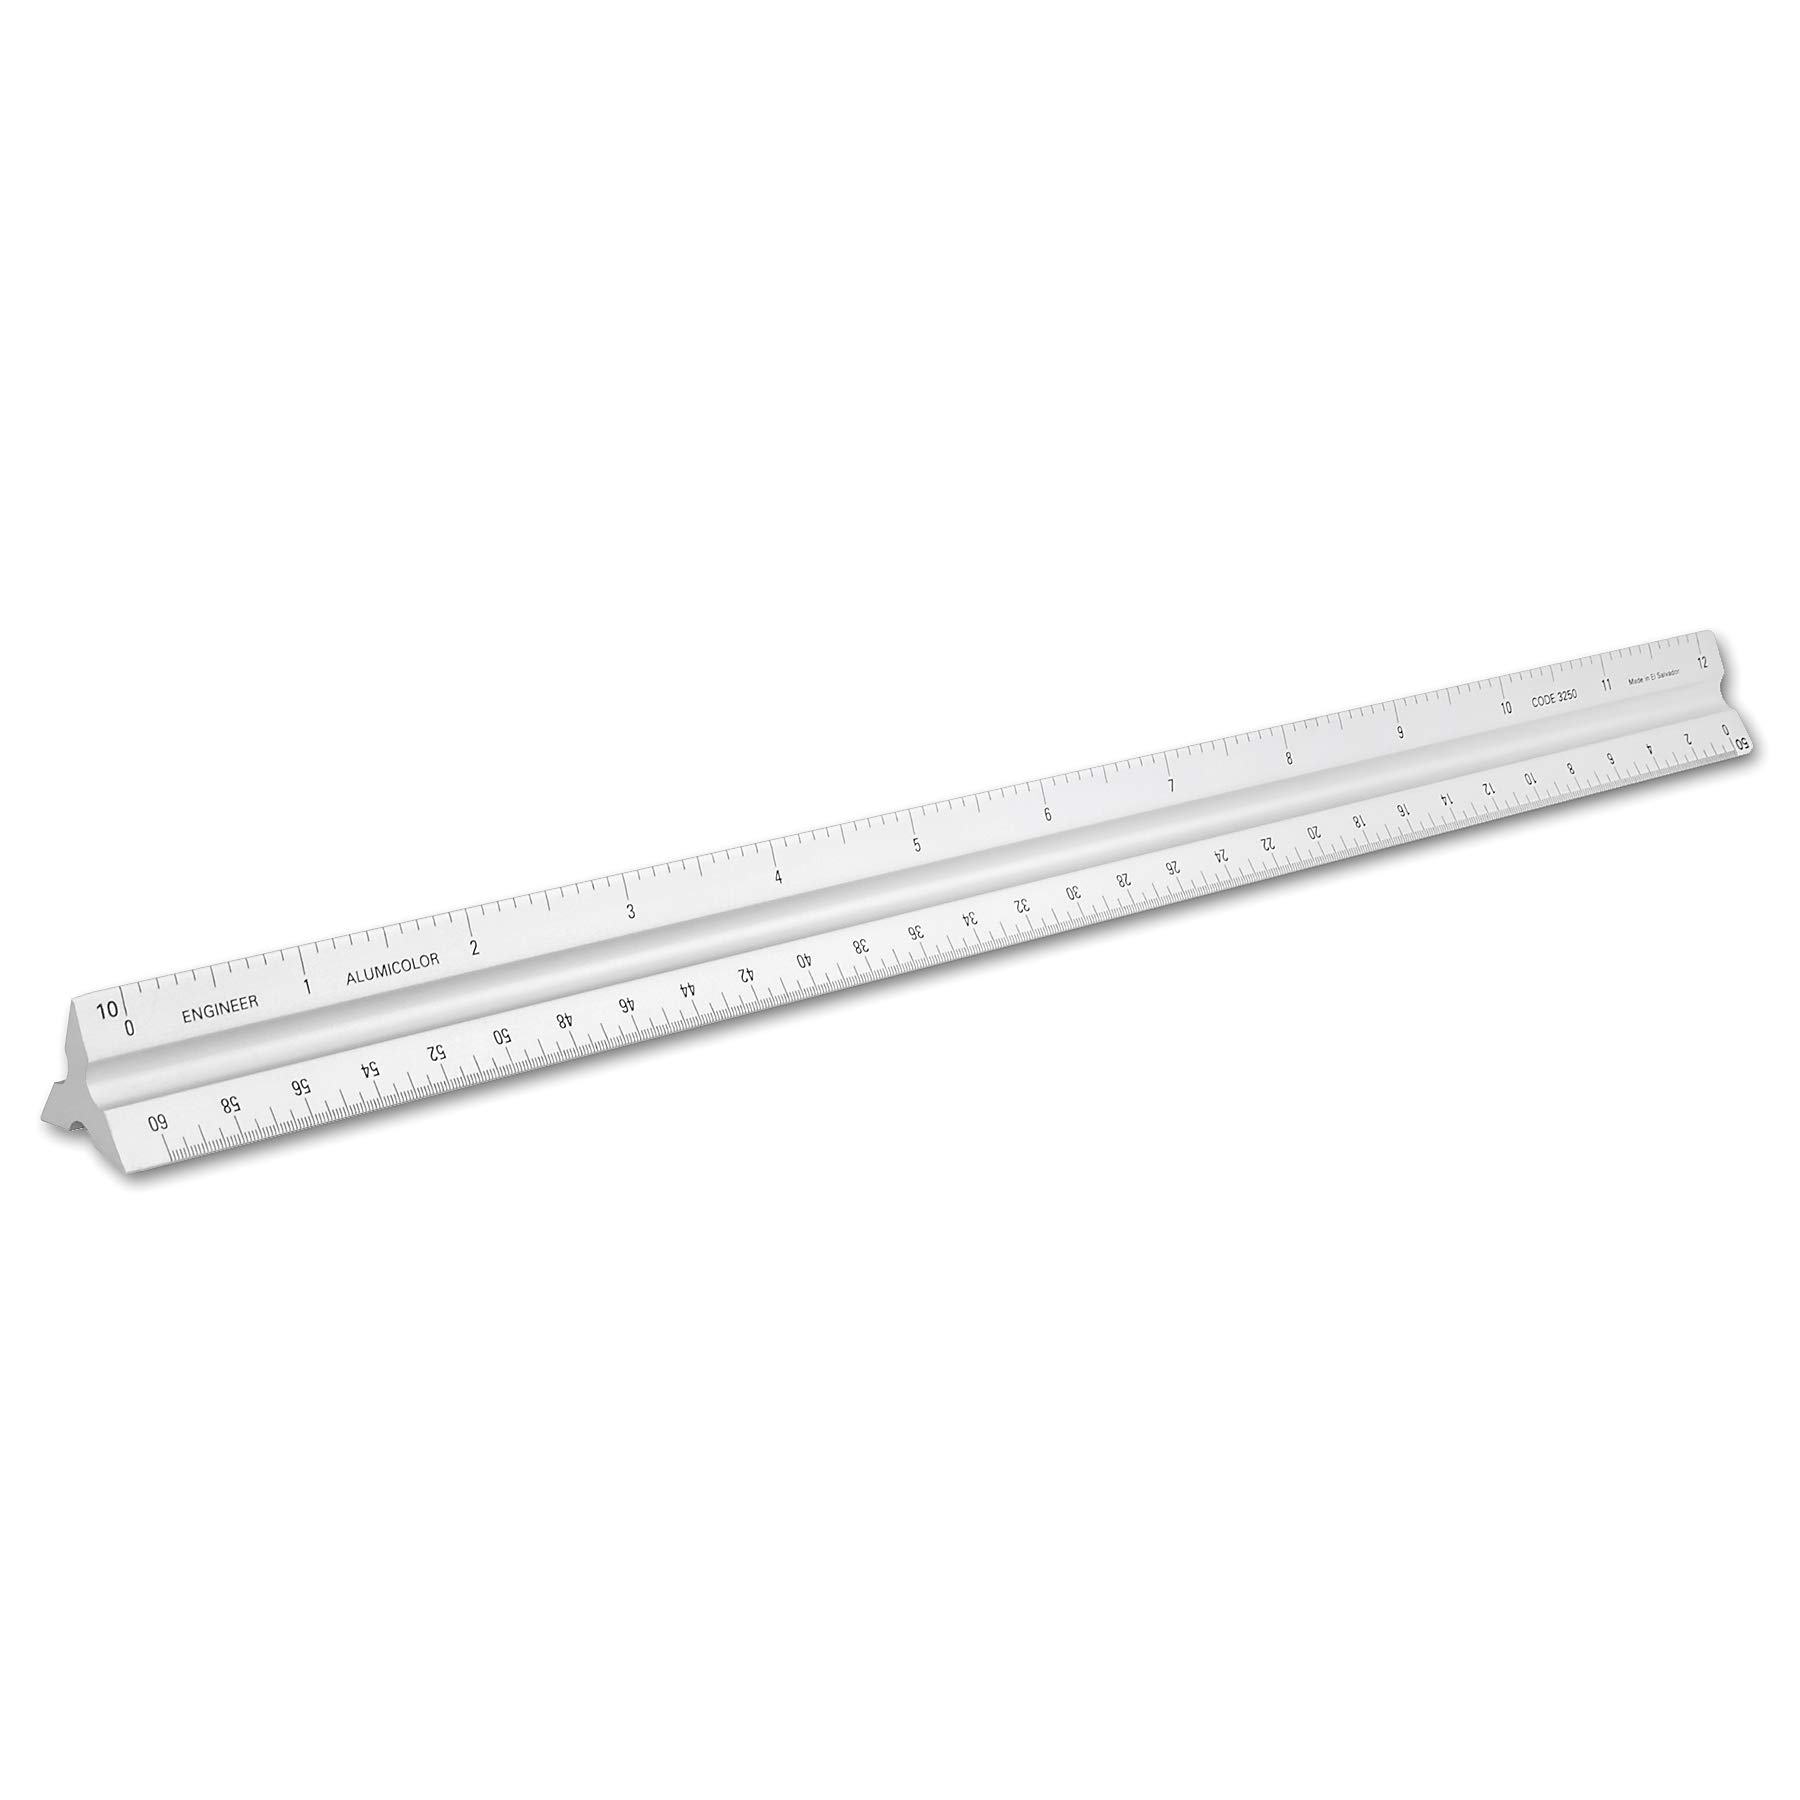 Alumicolor 3250-1 Aluminum Engineer Solid Drafting Scale, 12IN, Silver by Alumicolor